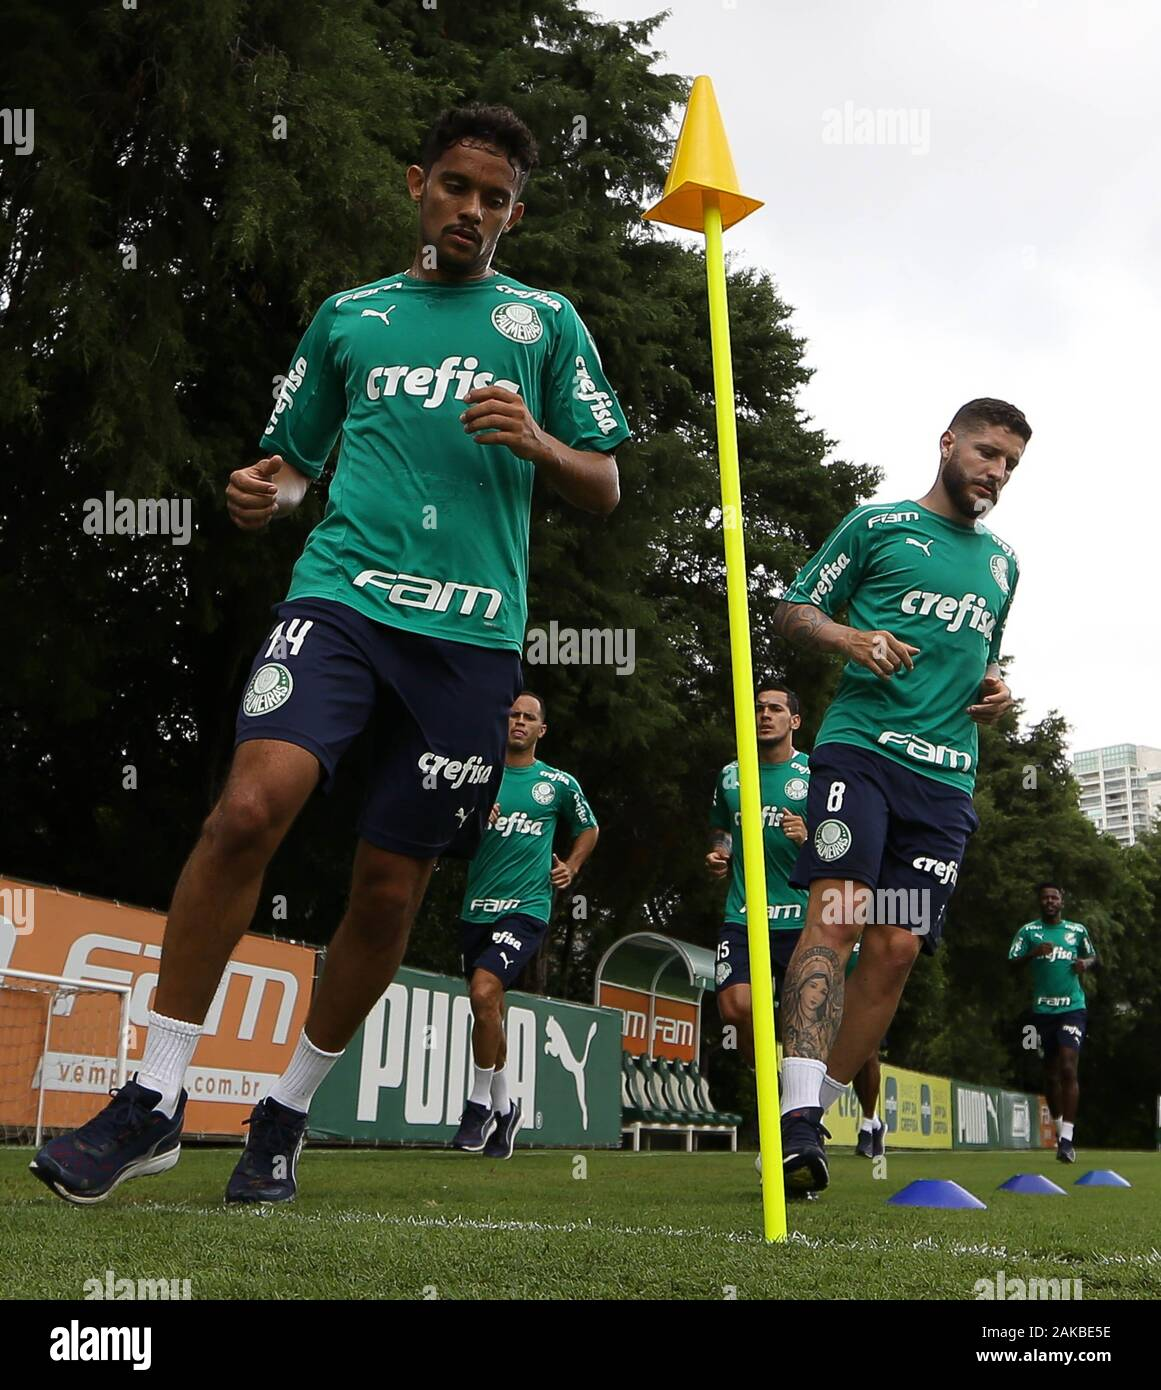 SÃO PAULO, SP - 08.01.2020: TREINO DO PALMEIRAS - Zé Rafael and Gustavo Scarpa (E) players from SE Palmeiras during training at the Football Academy. (Photo: Cesar Greco/Fotoarena) Stock Photo